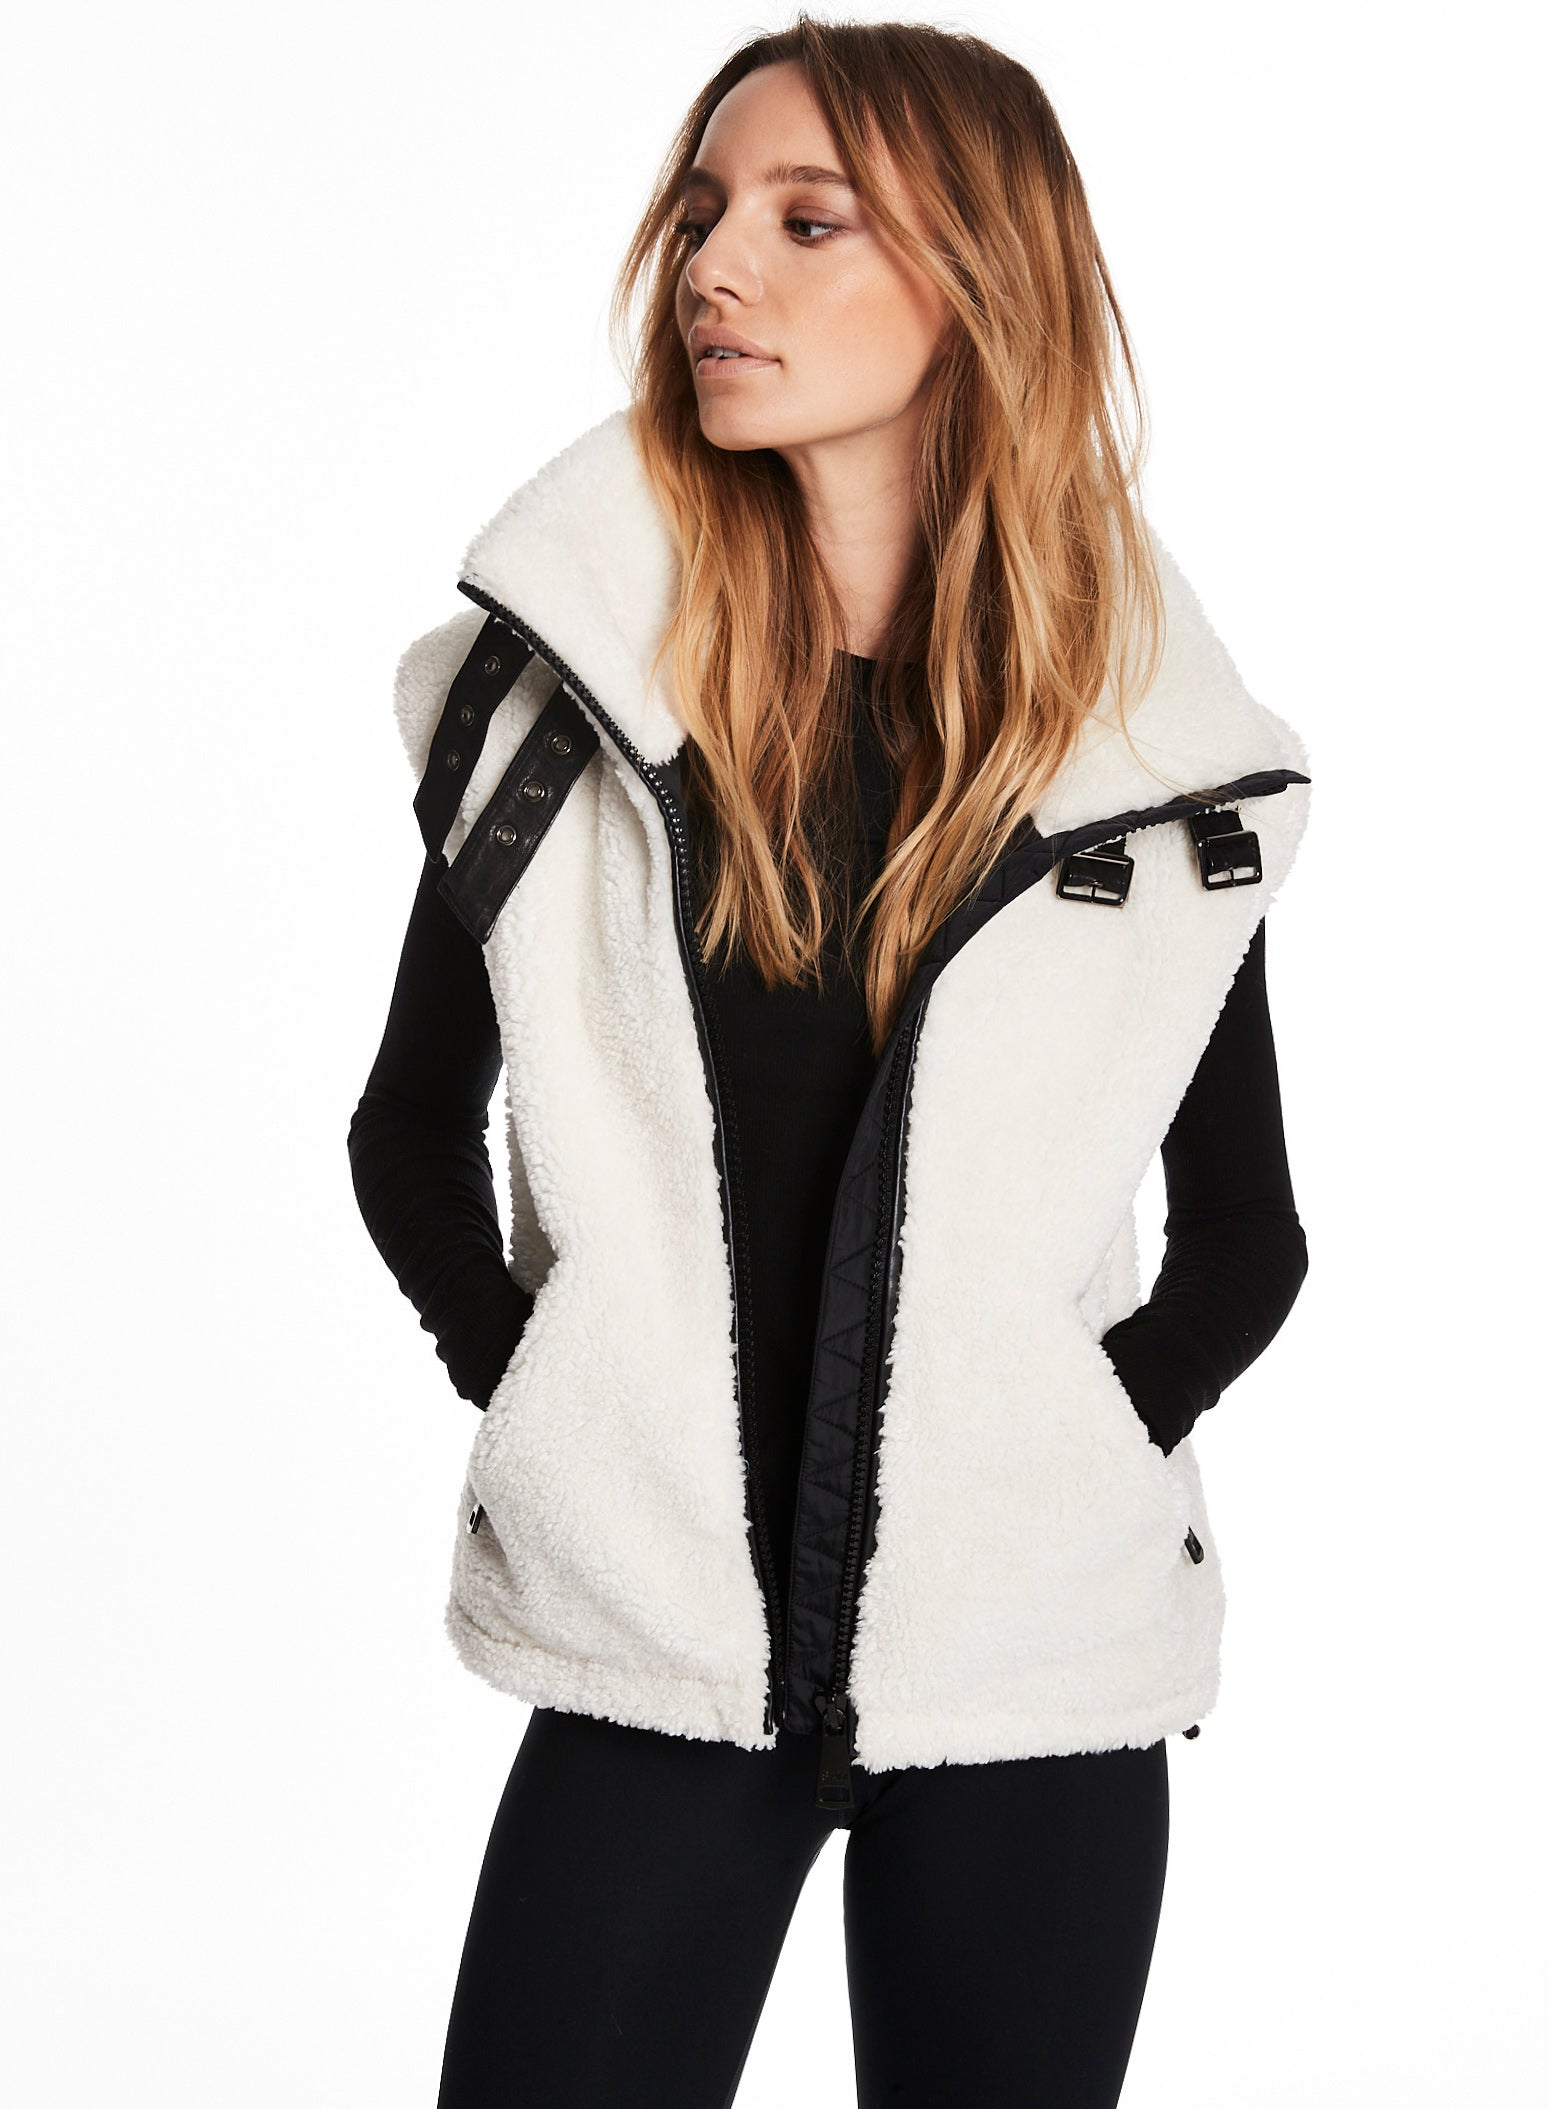 SHERPA VEST SHERPA VEST - SAM. New York Sam nyc jacket